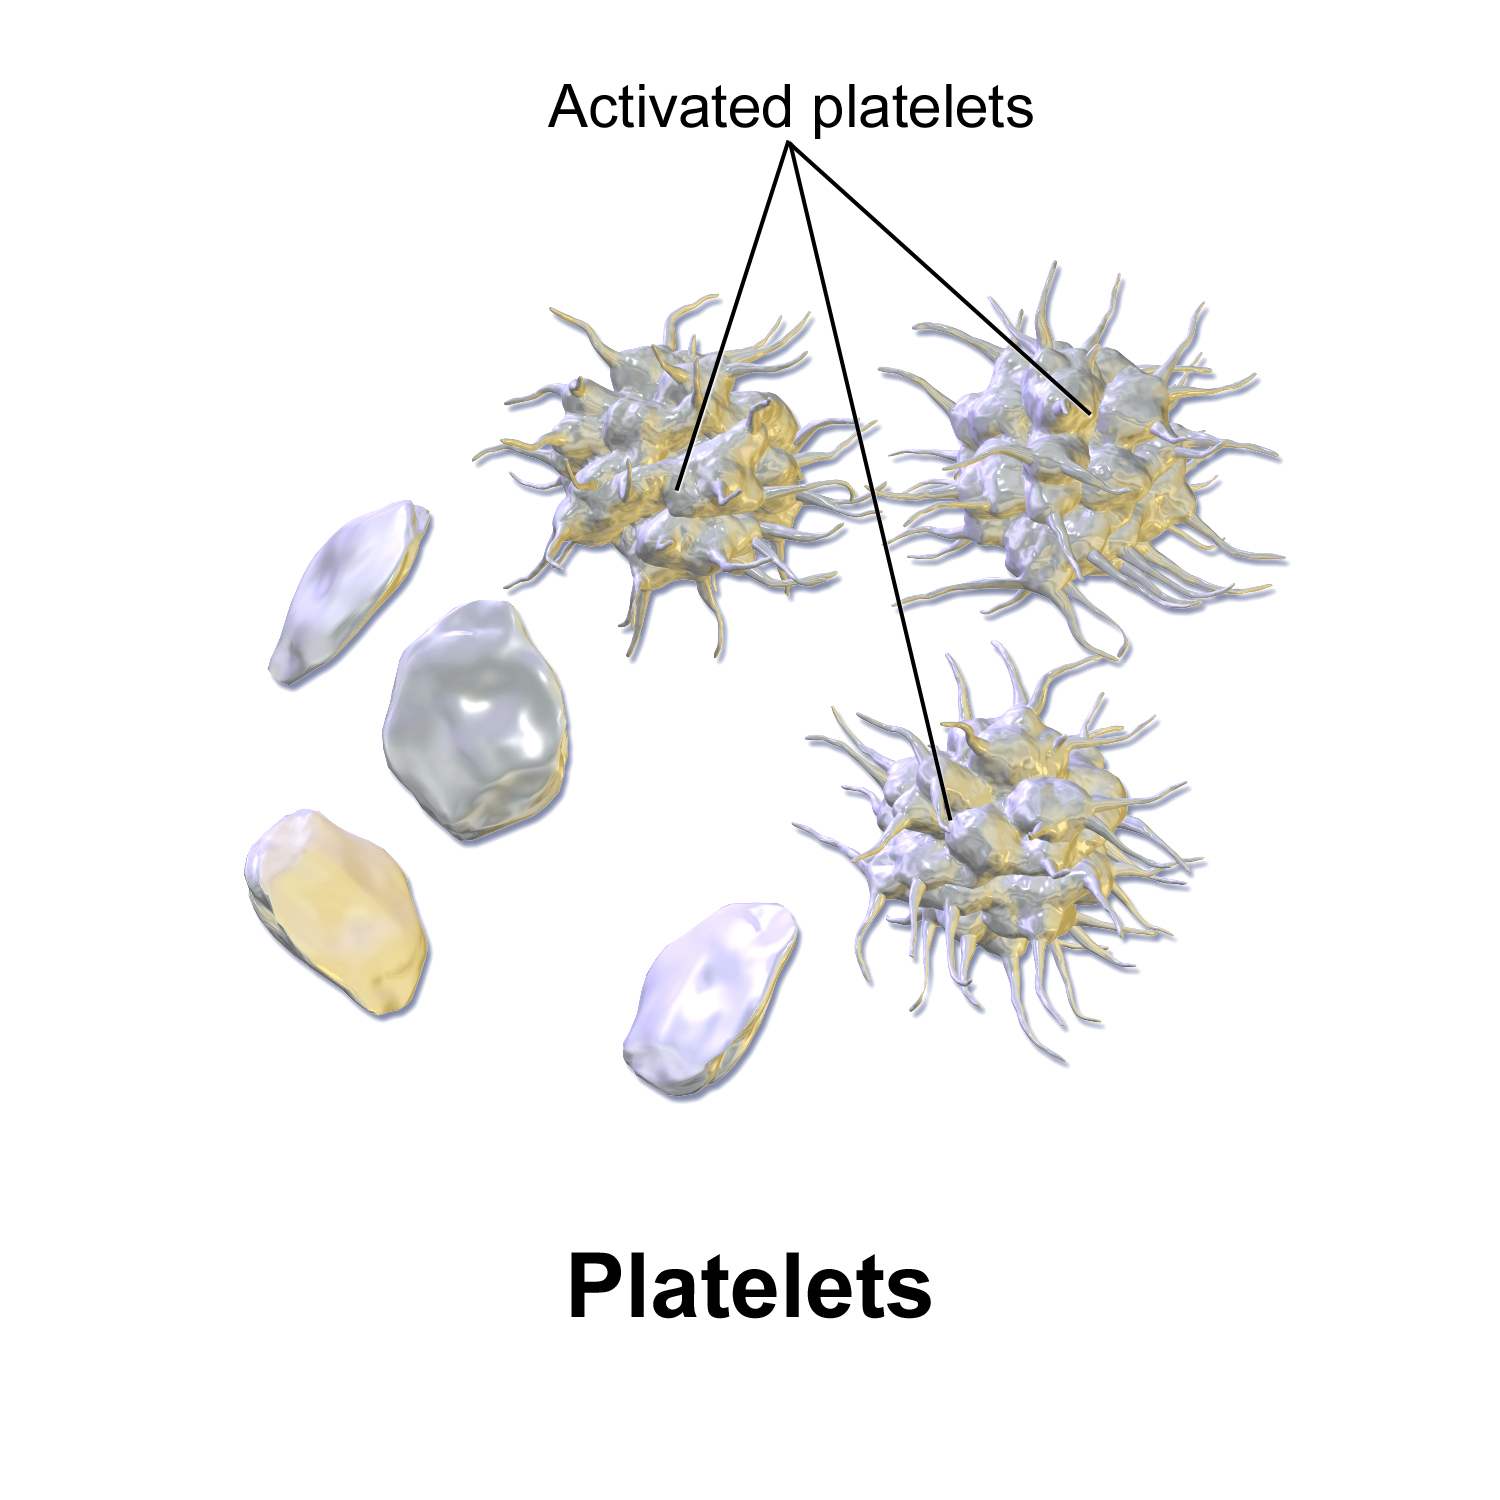 image source: https://commons.wikimedia.org/wiki/File:Blausen_0740_Platelets.png